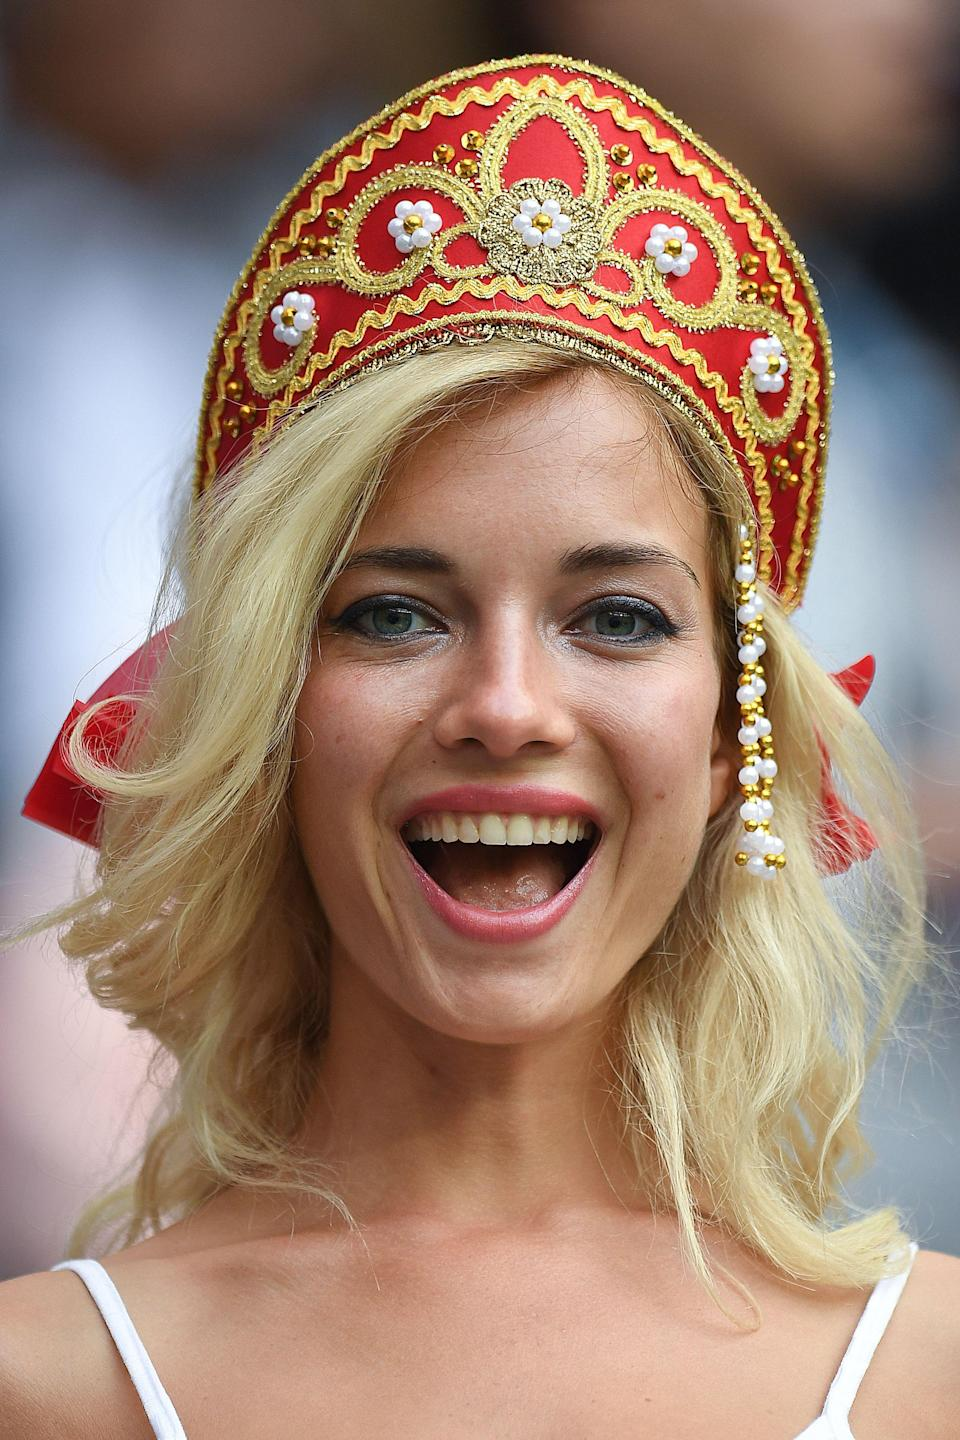 <p>A Russia fan smiles before the start of the Russia 2018 World Cup Group A football match between Russia and Saudi Arabia at the Luzhniki Stadium in Moscow on June 14, 2018. (Photo by Patrik STOLLARZ / AFP) </p>